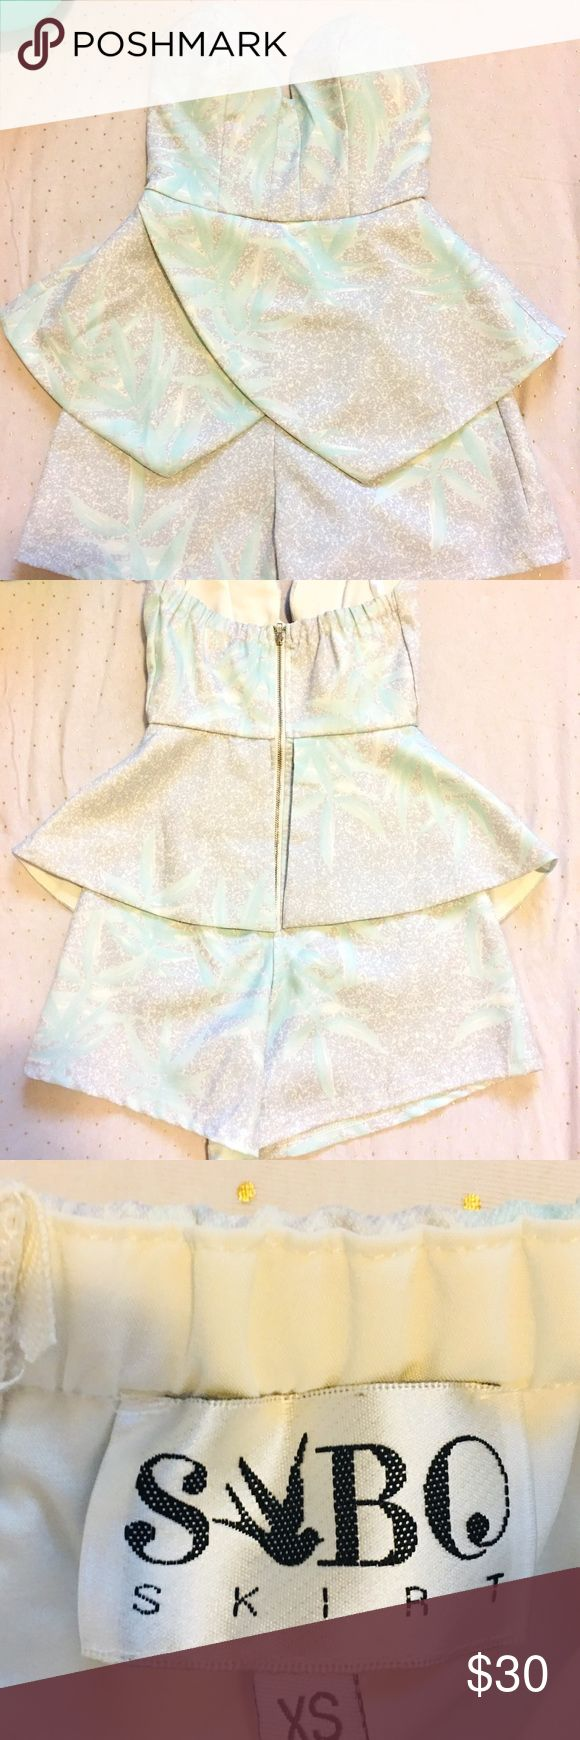 Women's Playsuit by Sabo Skirt Women's Playsuit by Sabo Skirt • size: xs  • Never been worn. Brand new without tag •color: multi-colour  •Brand: Sabo Skirt  If you have more questions please message me.:) Thank you! Sabo Skirt Dresses Strapless